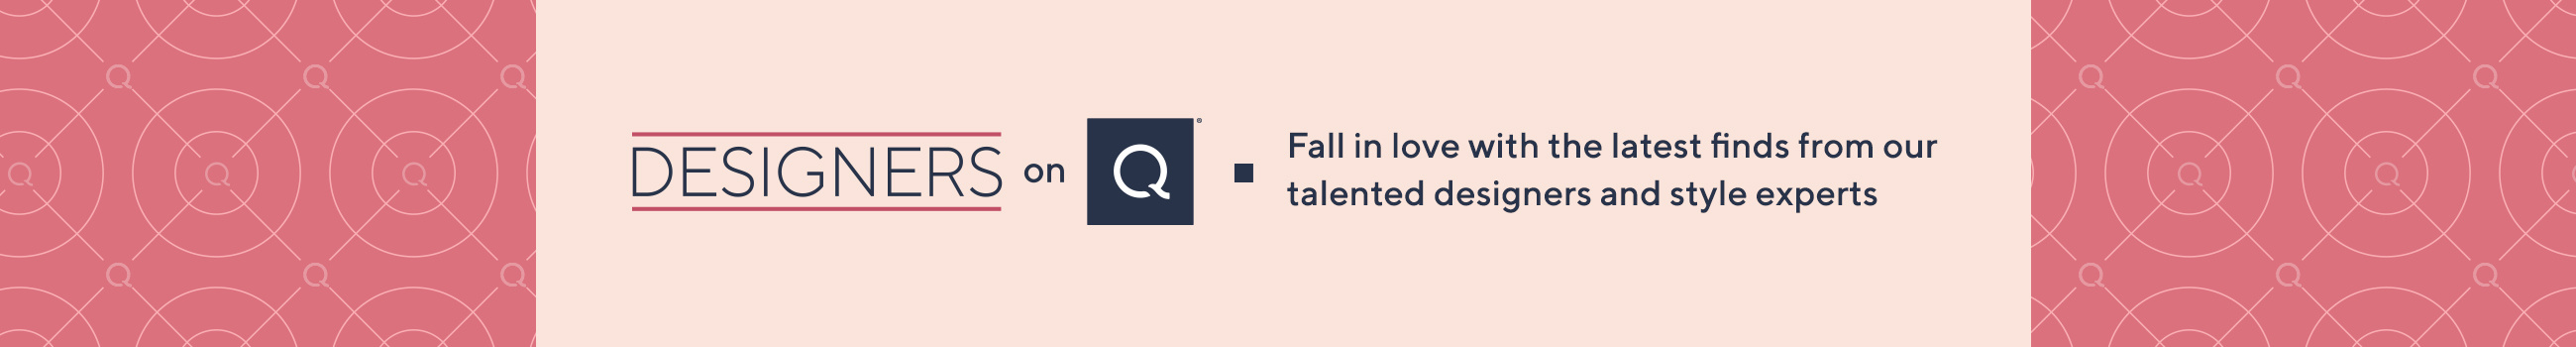 Designers on Q  Fall in love with the latest finds from our talented designers & style experts